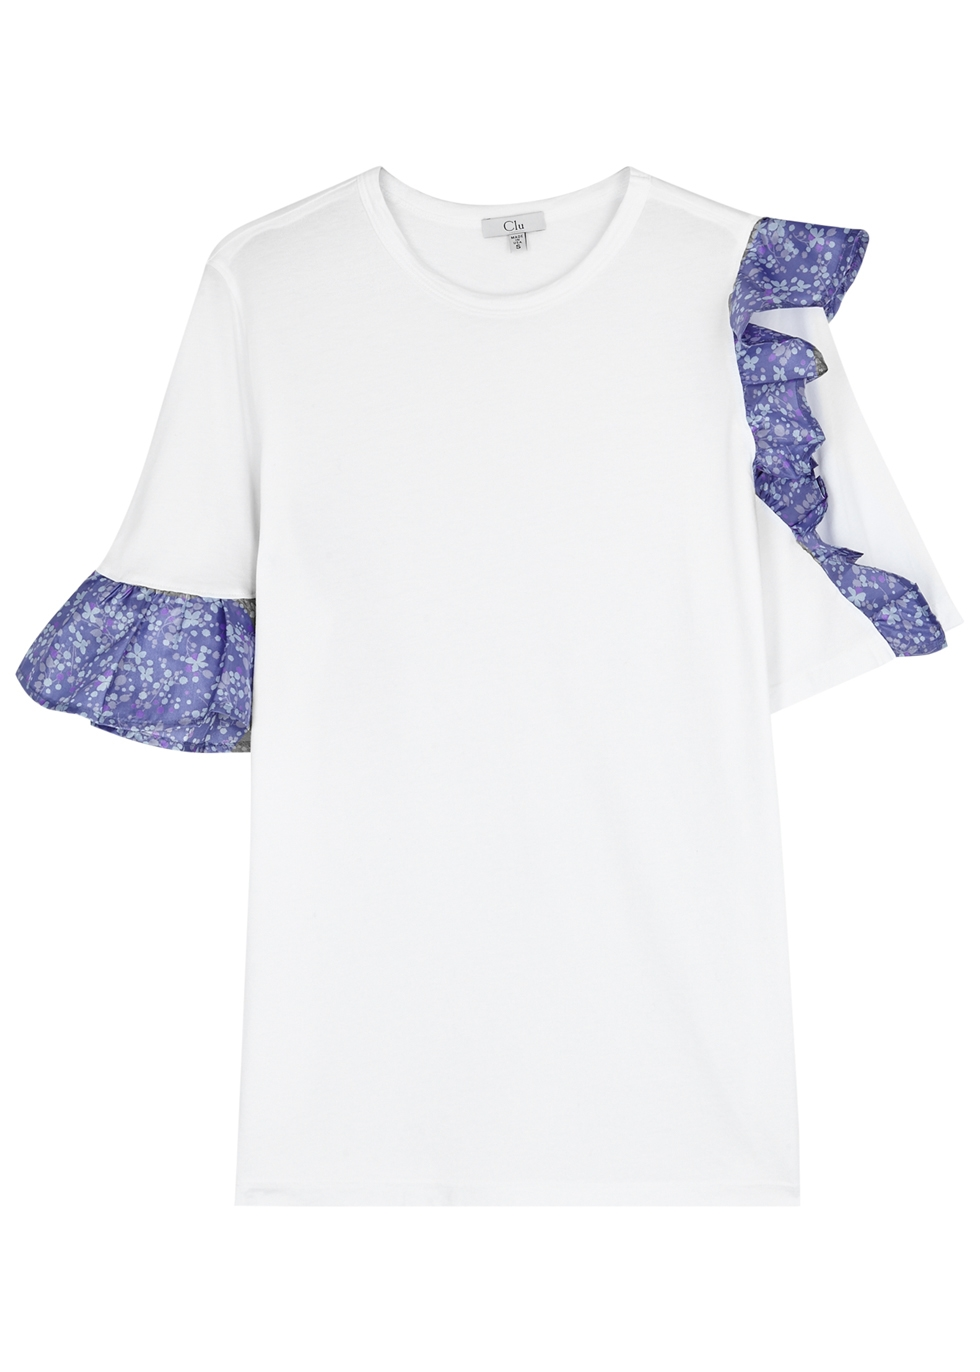 CLU WHITE RUFFLE-TRIMMED COTTON TOP